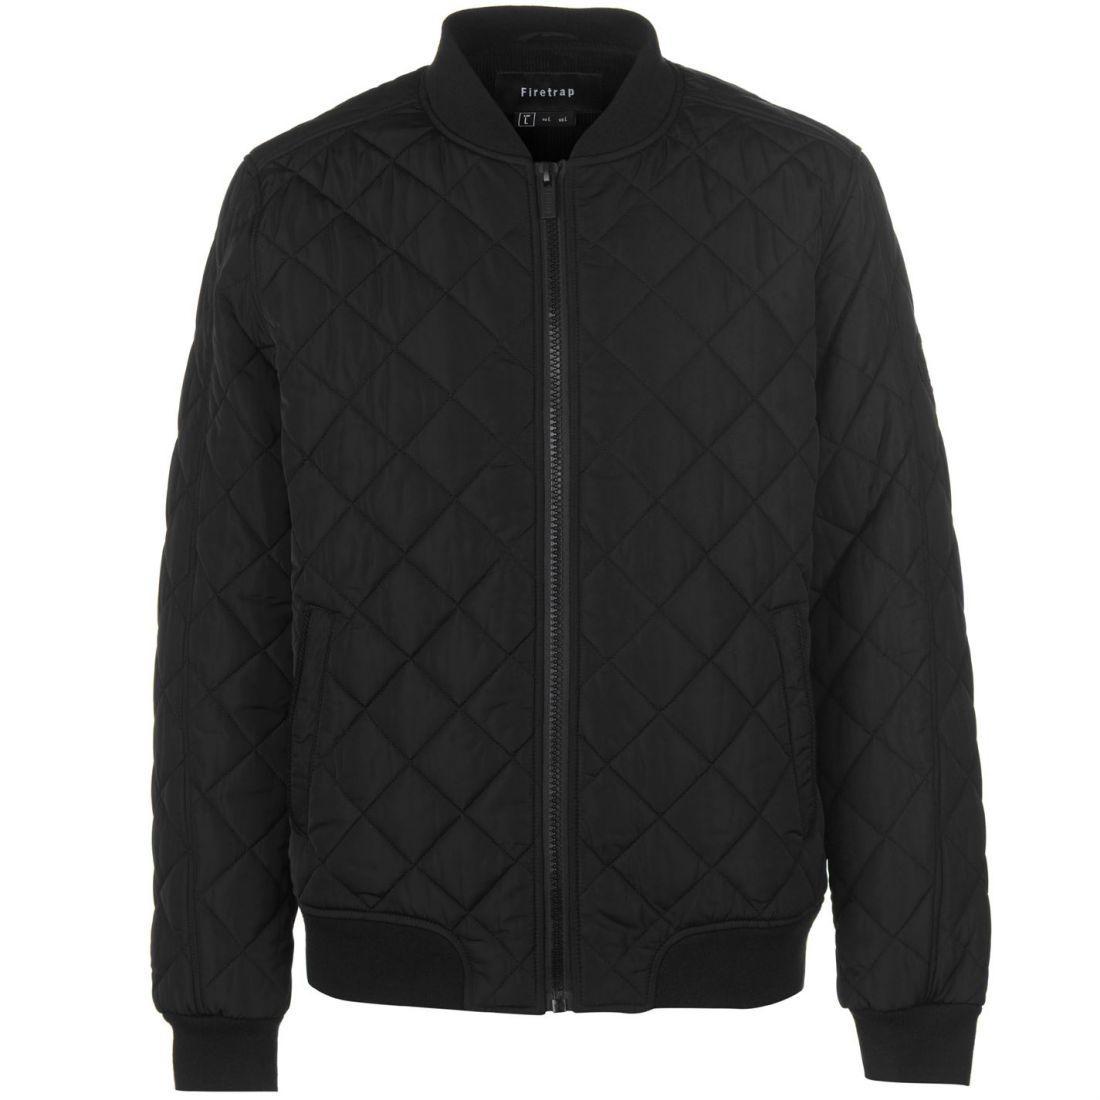 8bec10c98 Details about Mens Firetrap Quilted Bomber Jacket Long Sleeve New